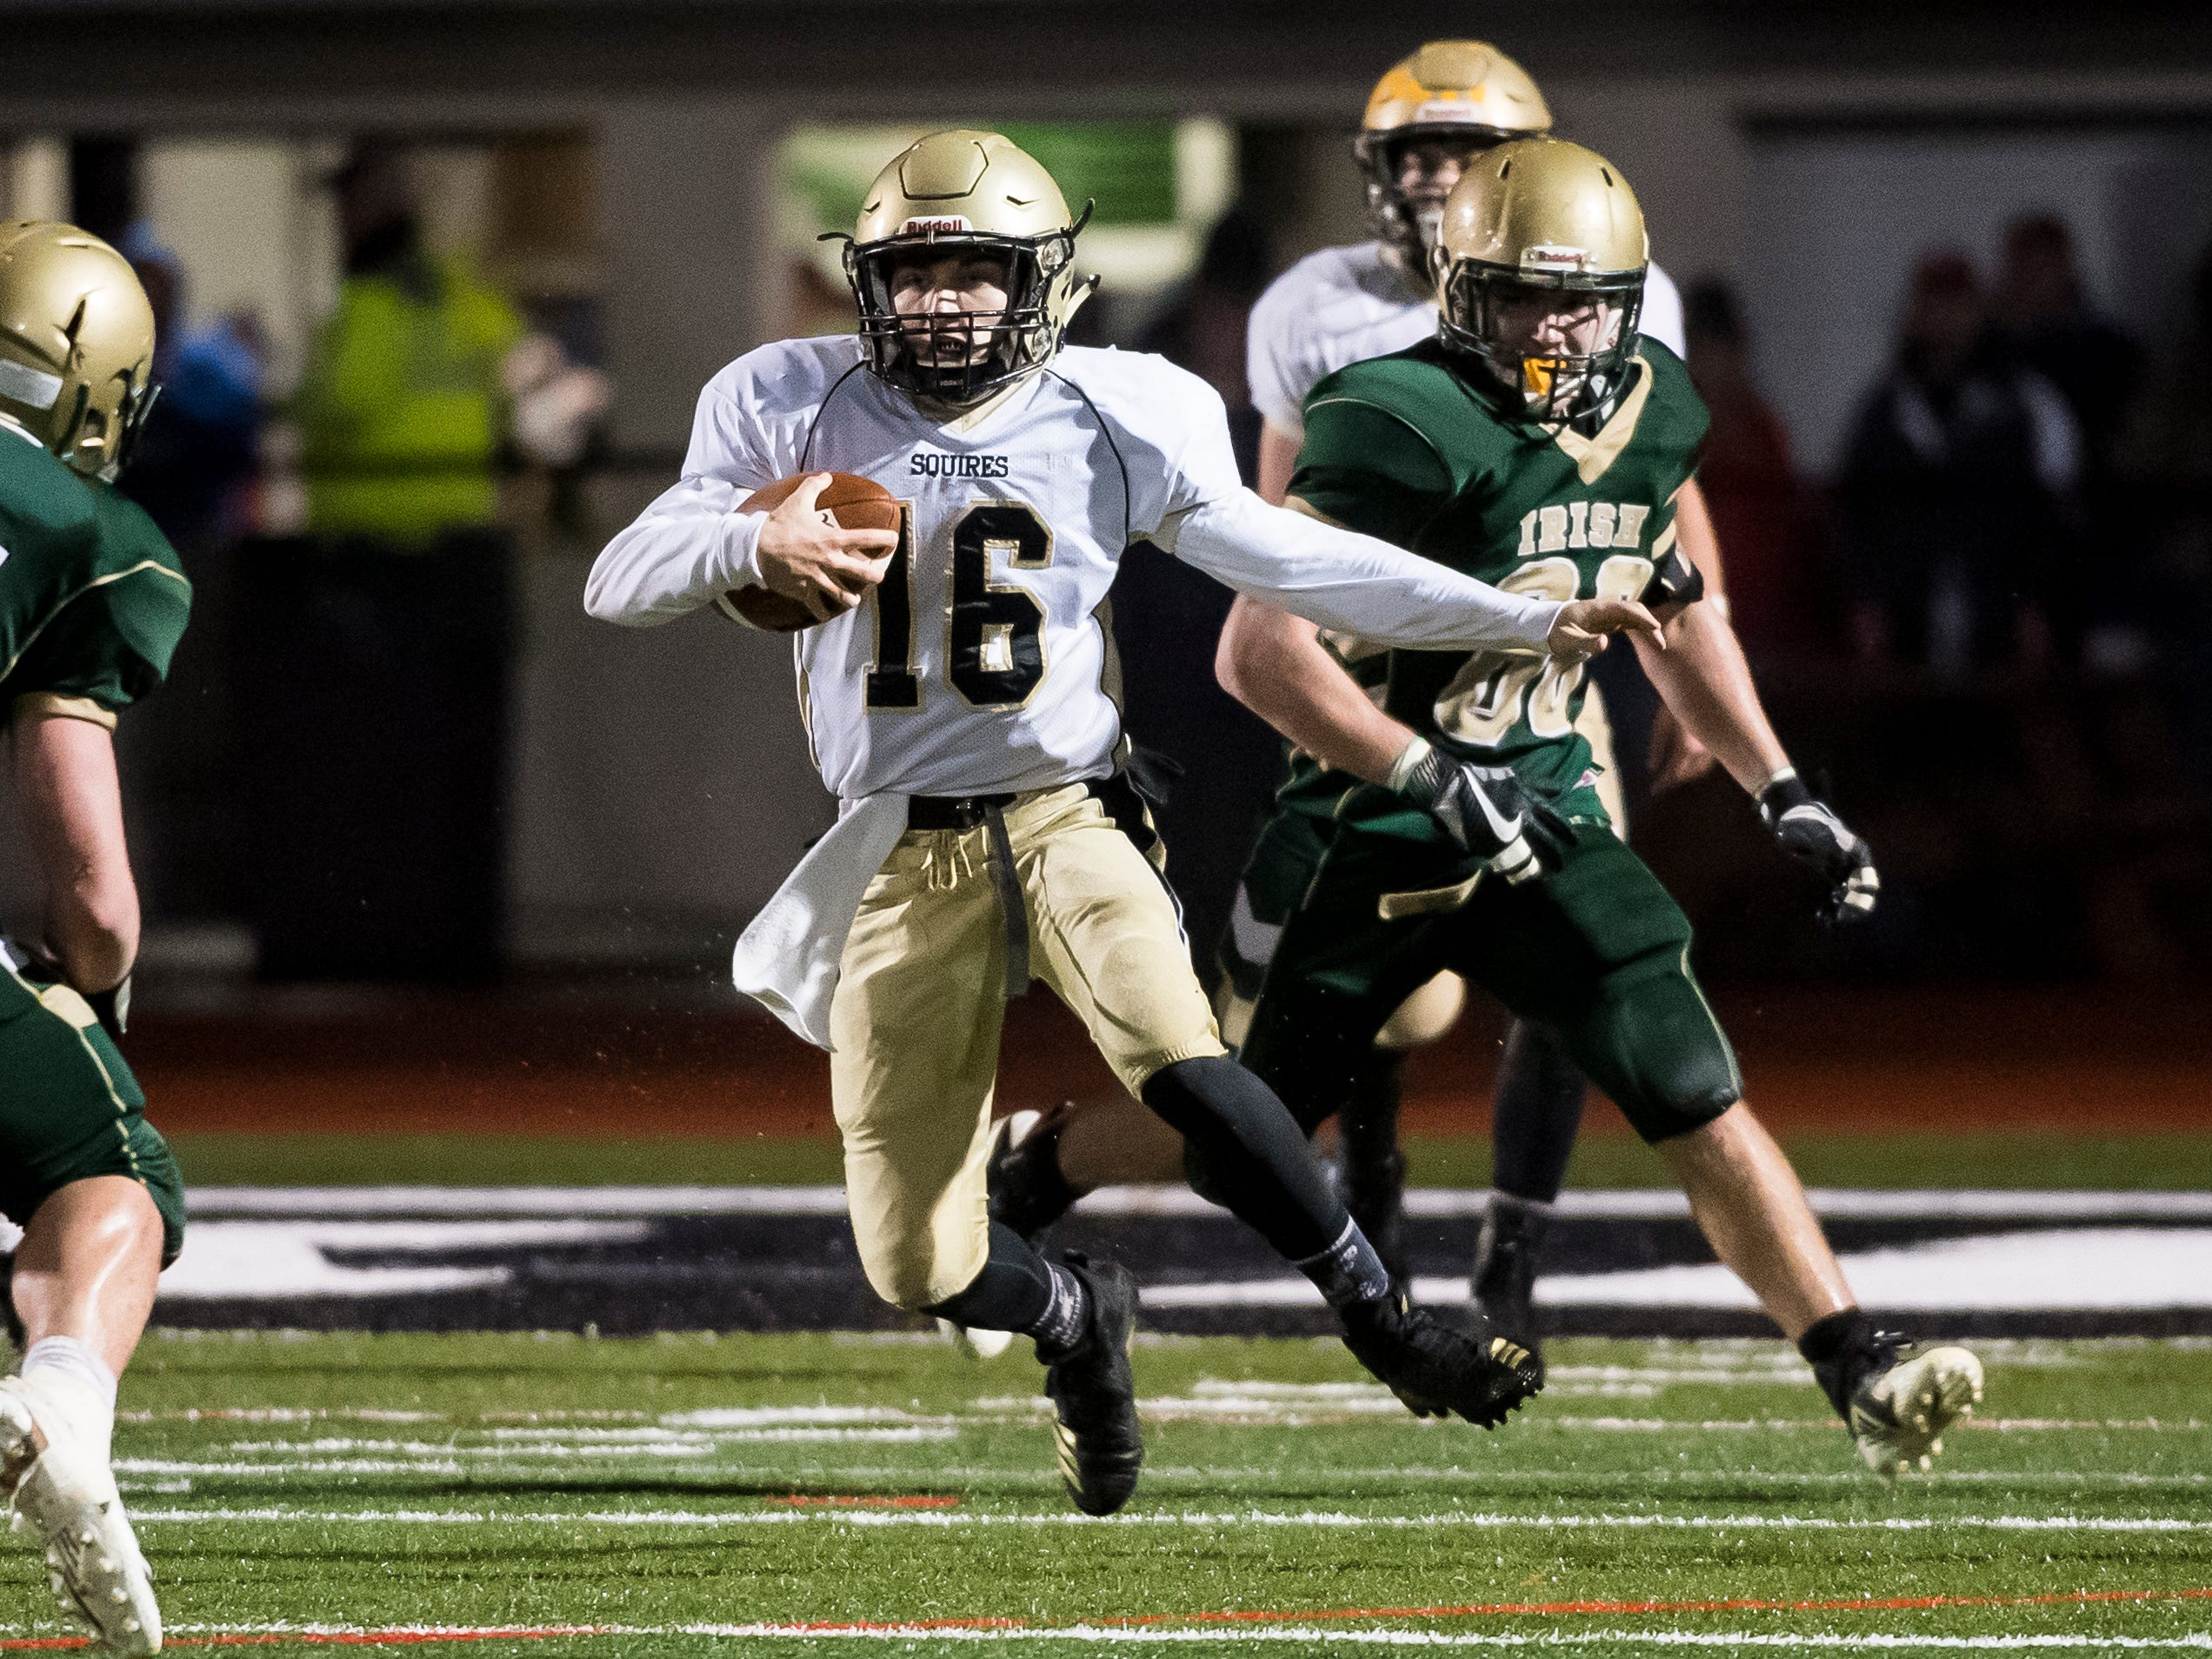 Delone Catholic's Evan Brady runs the ball against York Catholic in the PIAA District 3 Class 2A championship game at South Western High School on Friday, November 9, 2018. The Squires fell 28-21 in overtime.